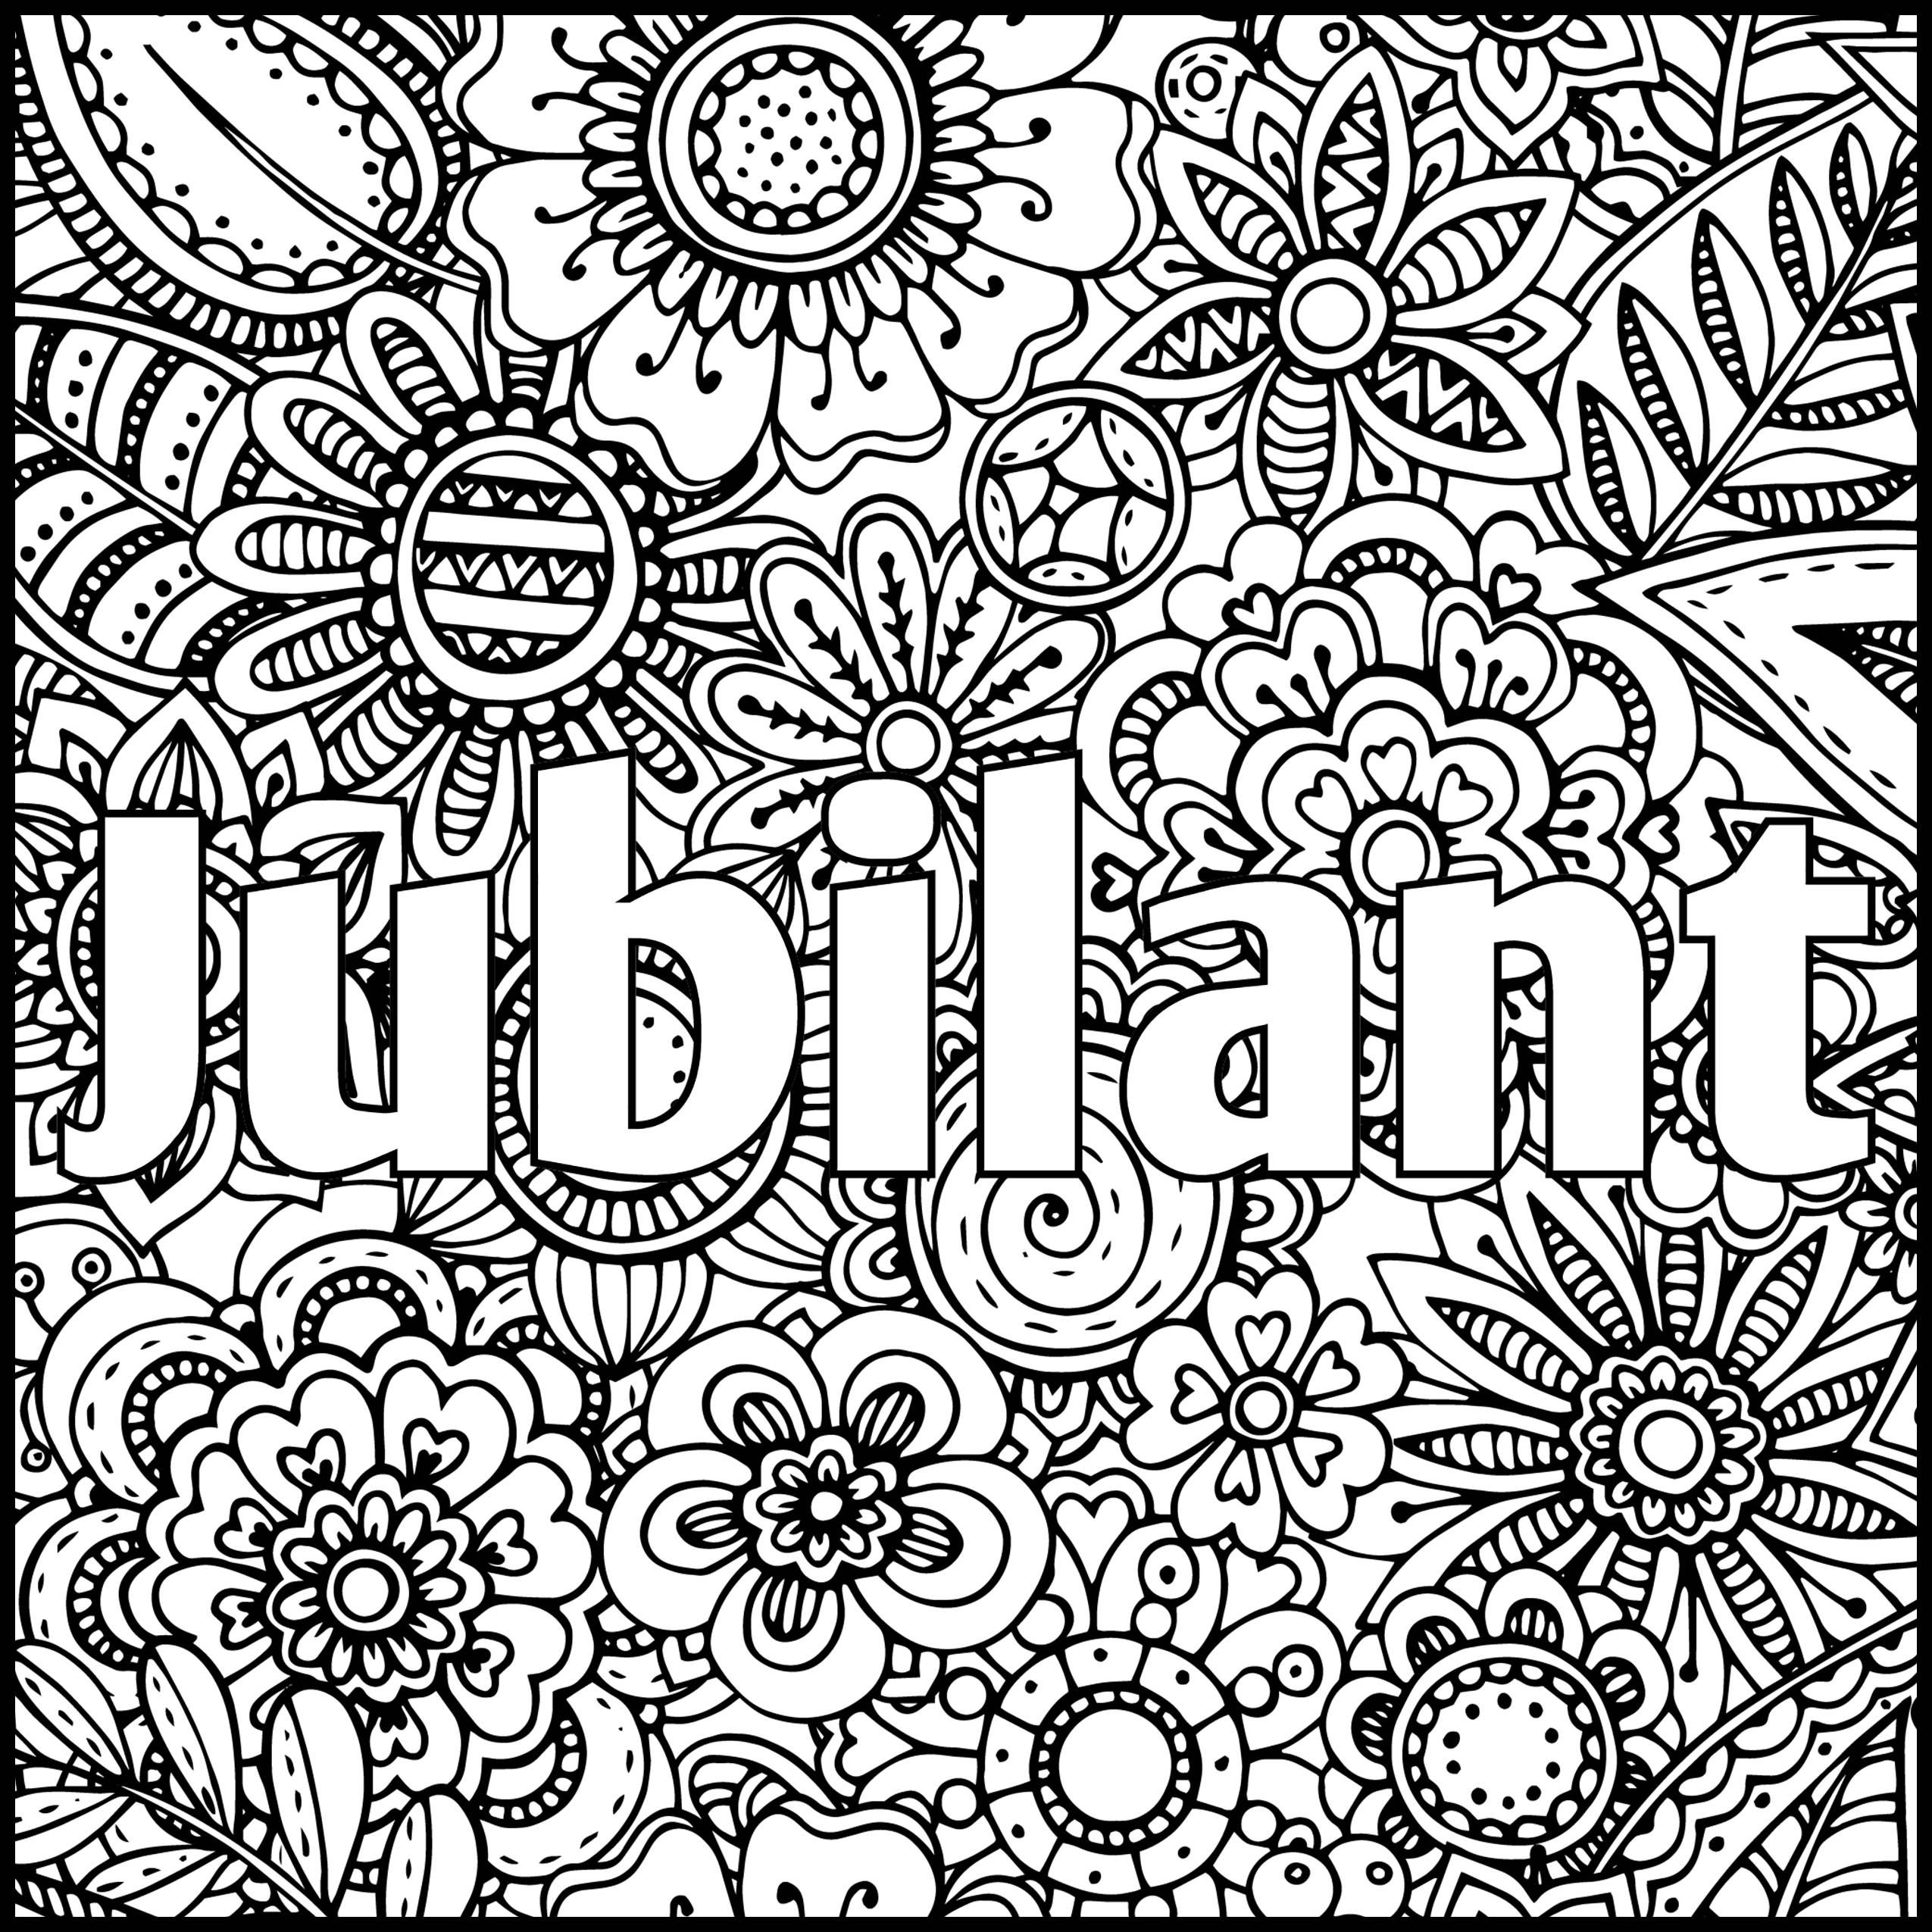 Jubilant Positive Word Coloring Book Printable Coloring Book Words Coloring Book Swear Word Coloring Book Coloring Pages